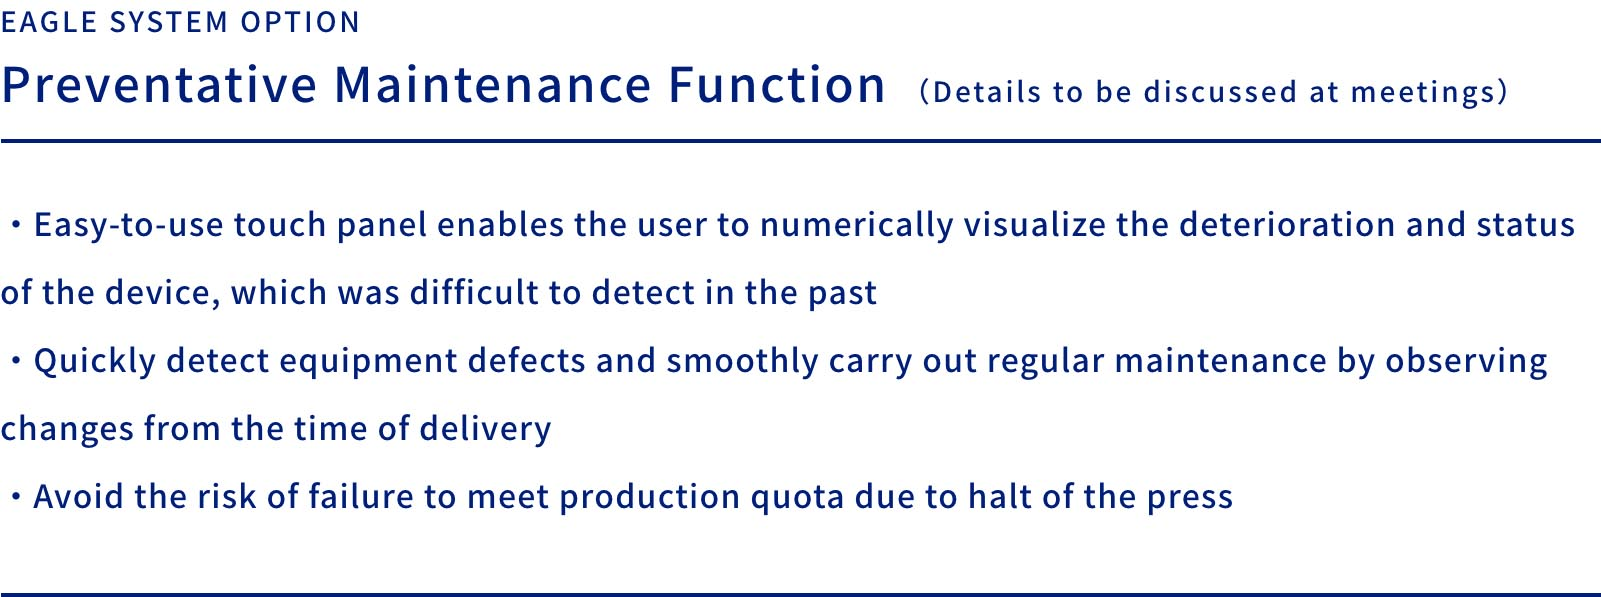 EAGLE SYSTEM OPTION  Preventative Maintenance Function (Details to be discussed at meetings)    ・Easy-to-use touch panel enables the user to numerically visualize the deterioration and status of the device, which was difficult to detect in the past・Quickly detect equipment defects and smoothly carry out regular maintenance by observing changes from the time of delivery・Avoid the risk of failure to meet production quota due to halt of the press